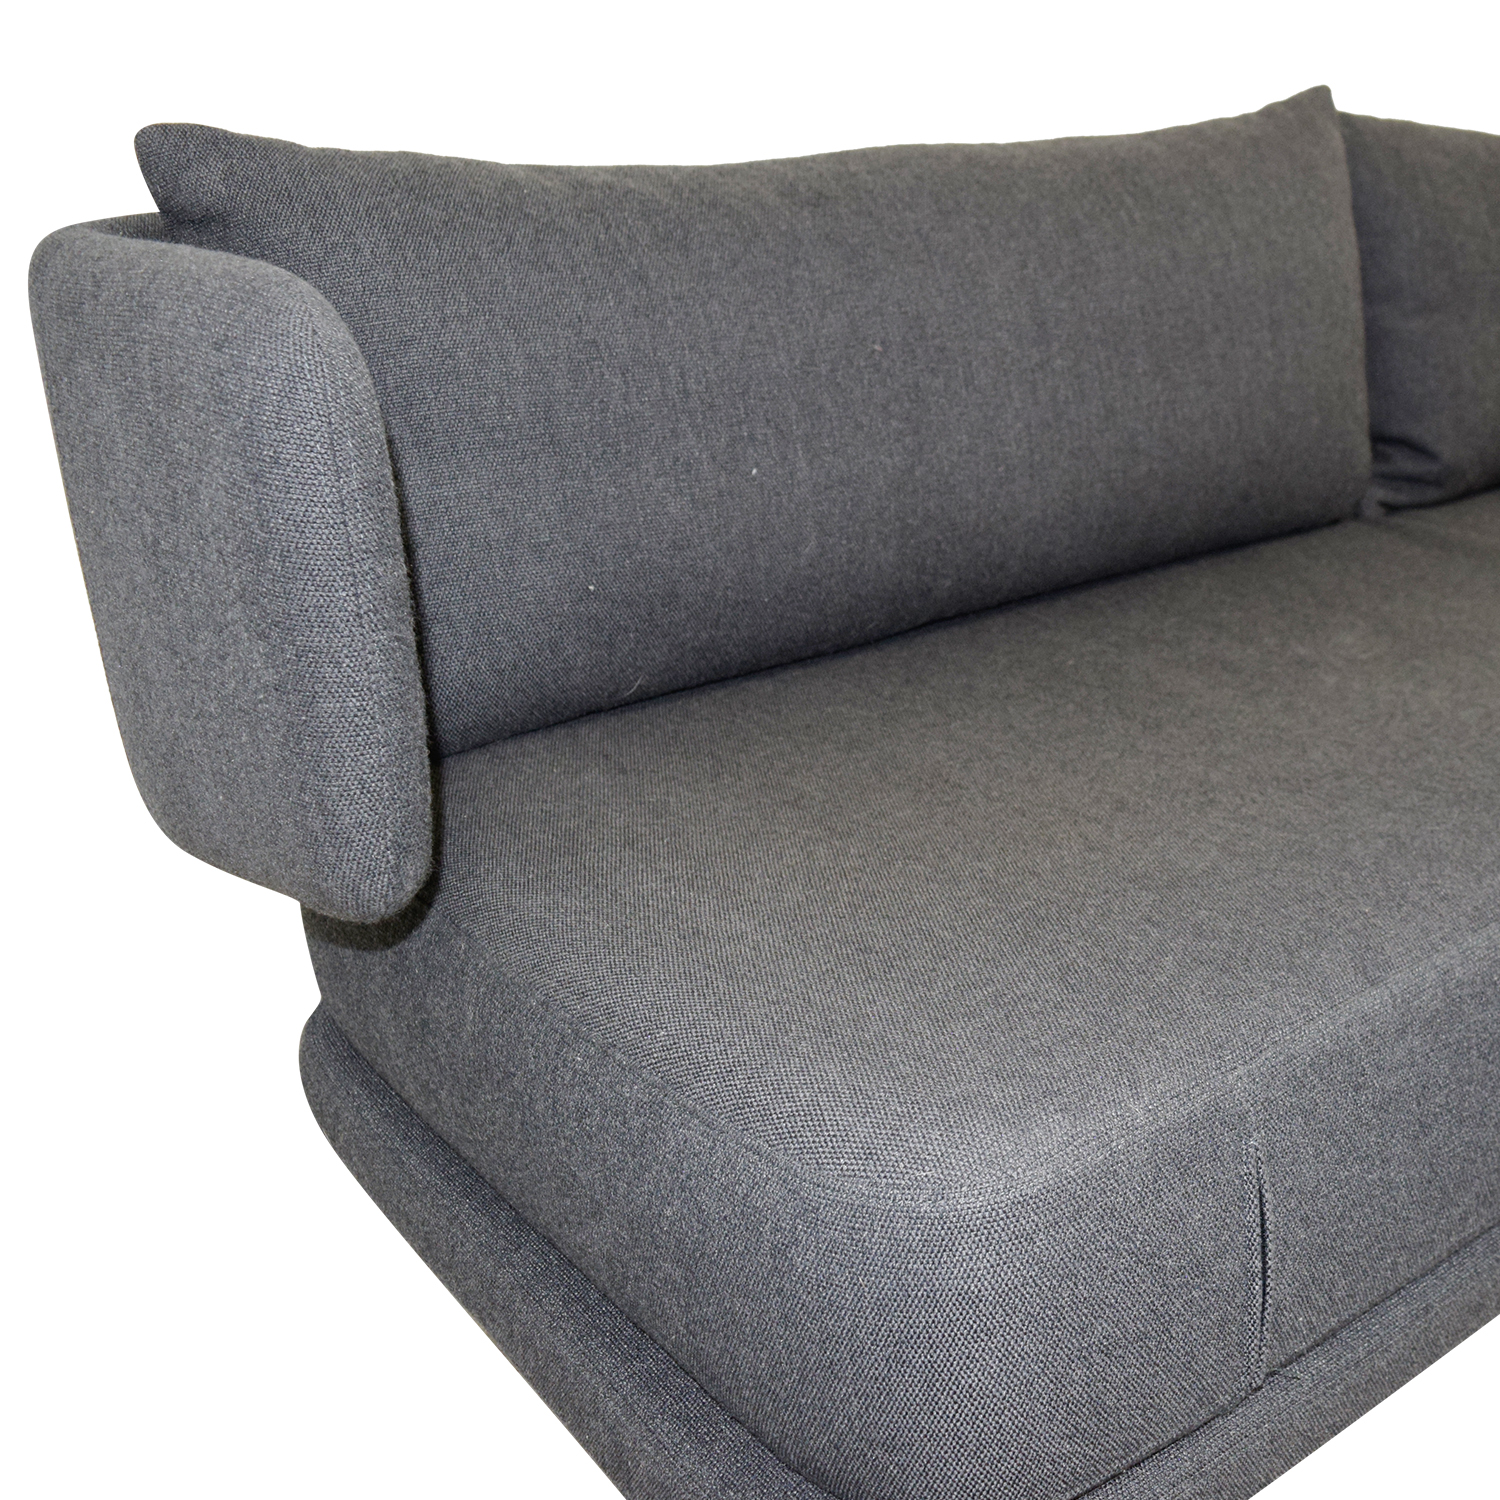 Pleasing 74 Off Design Within Reach Design Within Reach Charcoal Bay Sleeper Sofa Sofas Ncnpc Chair Design For Home Ncnpcorg